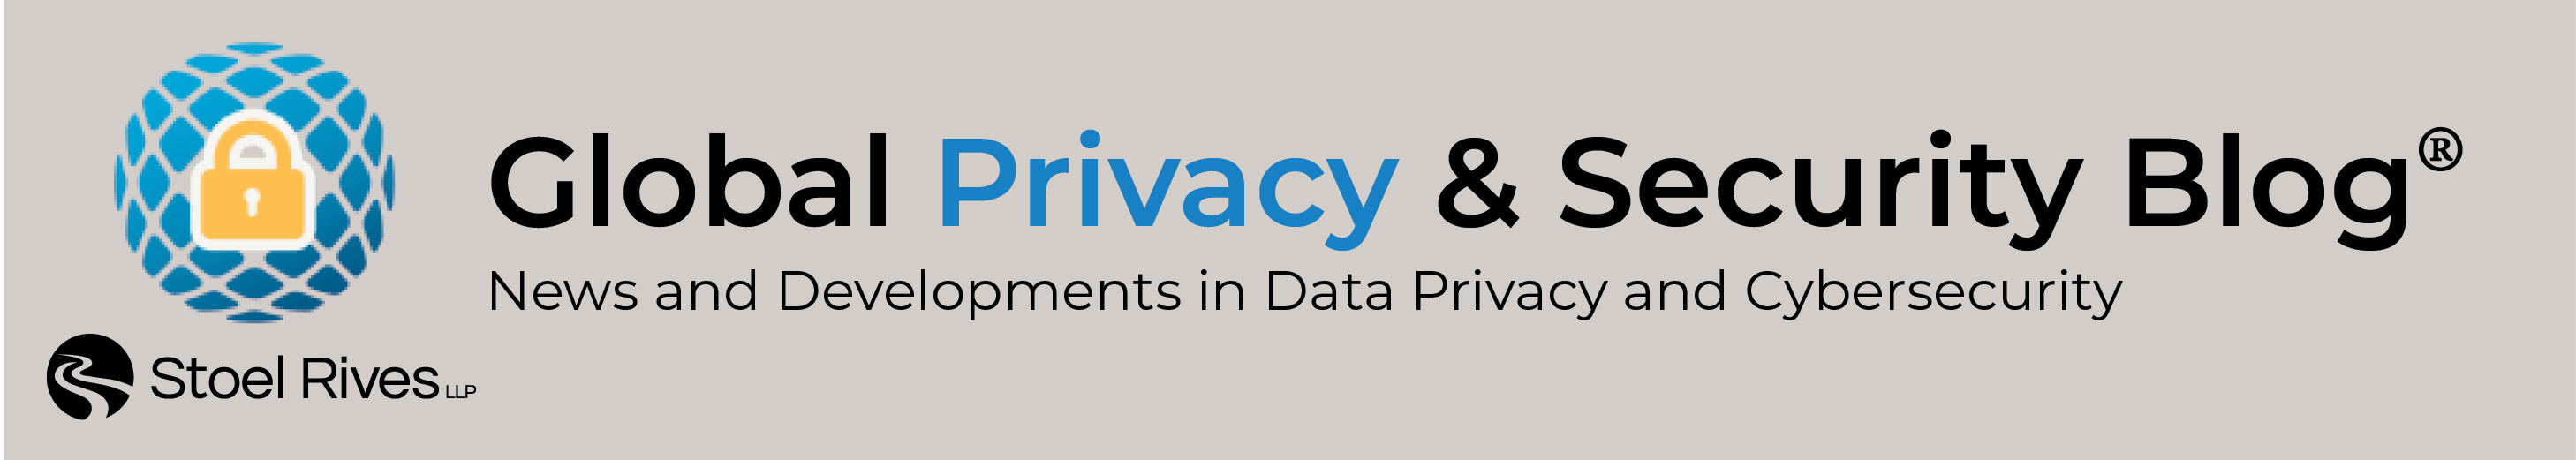 Stoel Rives - Global Privacy & Security Blog®